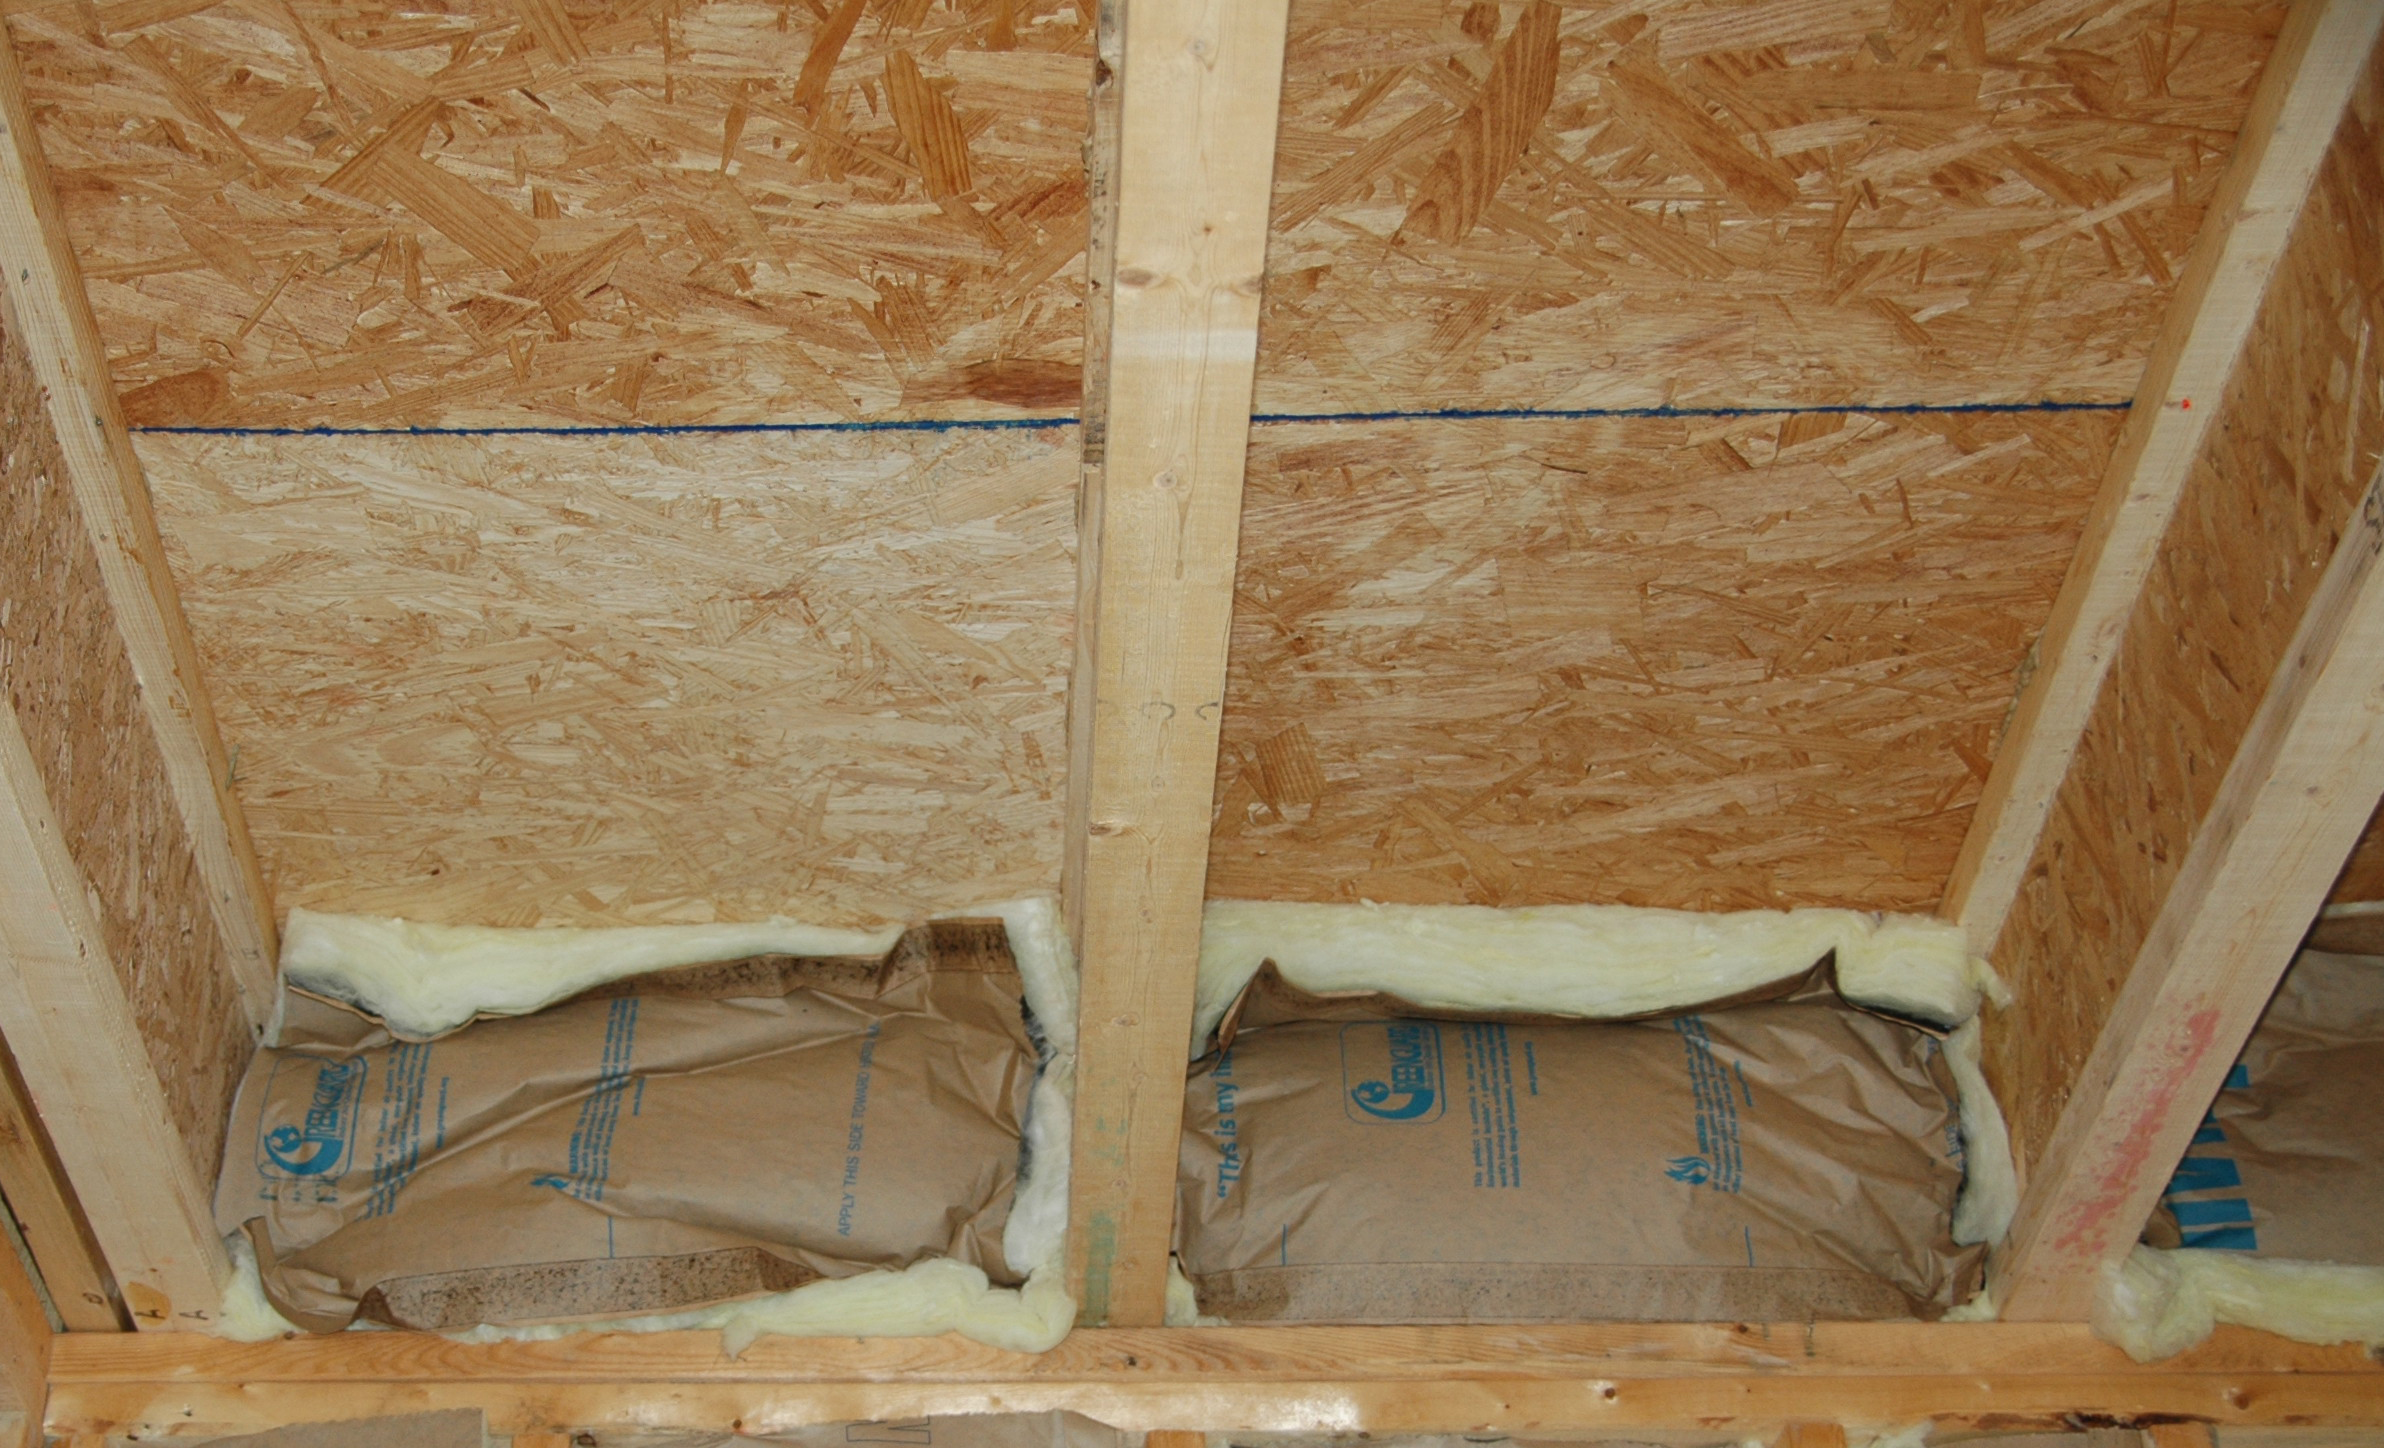 Batt insulation is not an effective air barrier